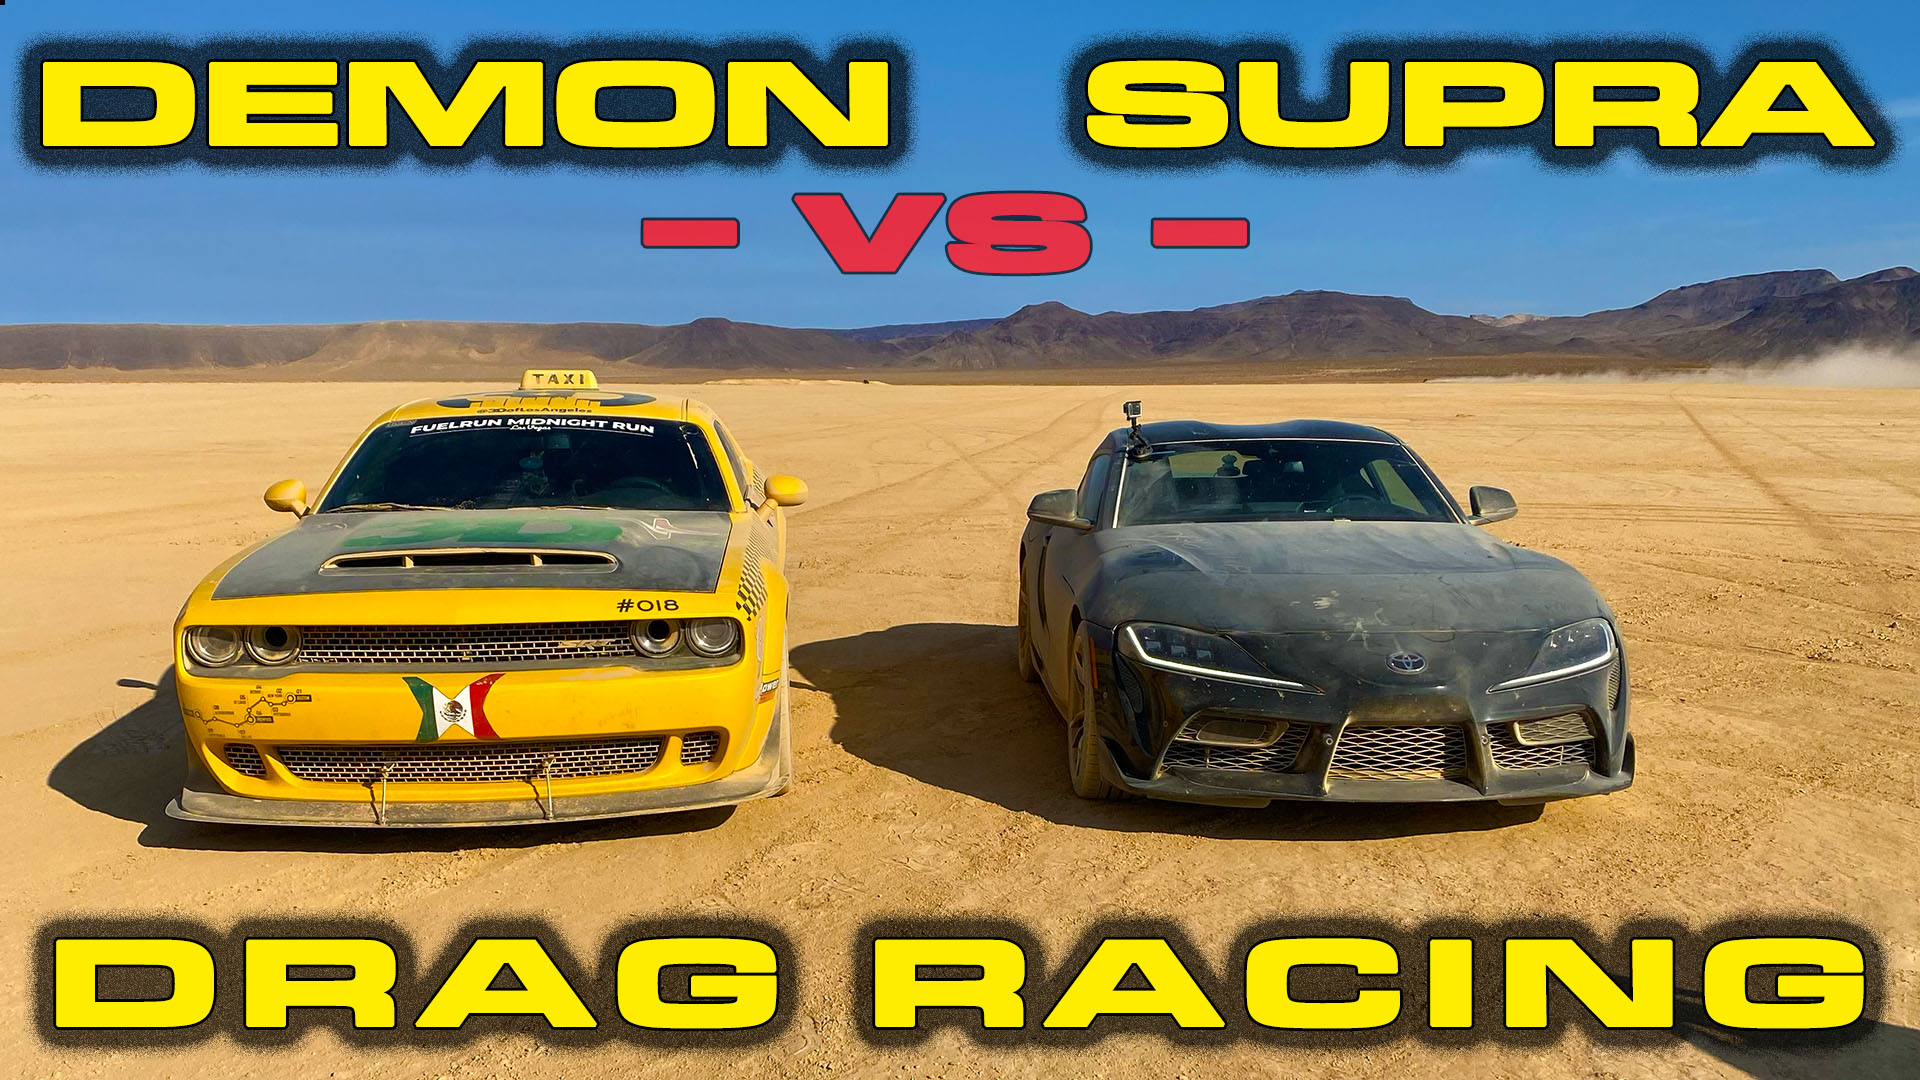 2020 Toyota Supra MKV vs Dodge Demon